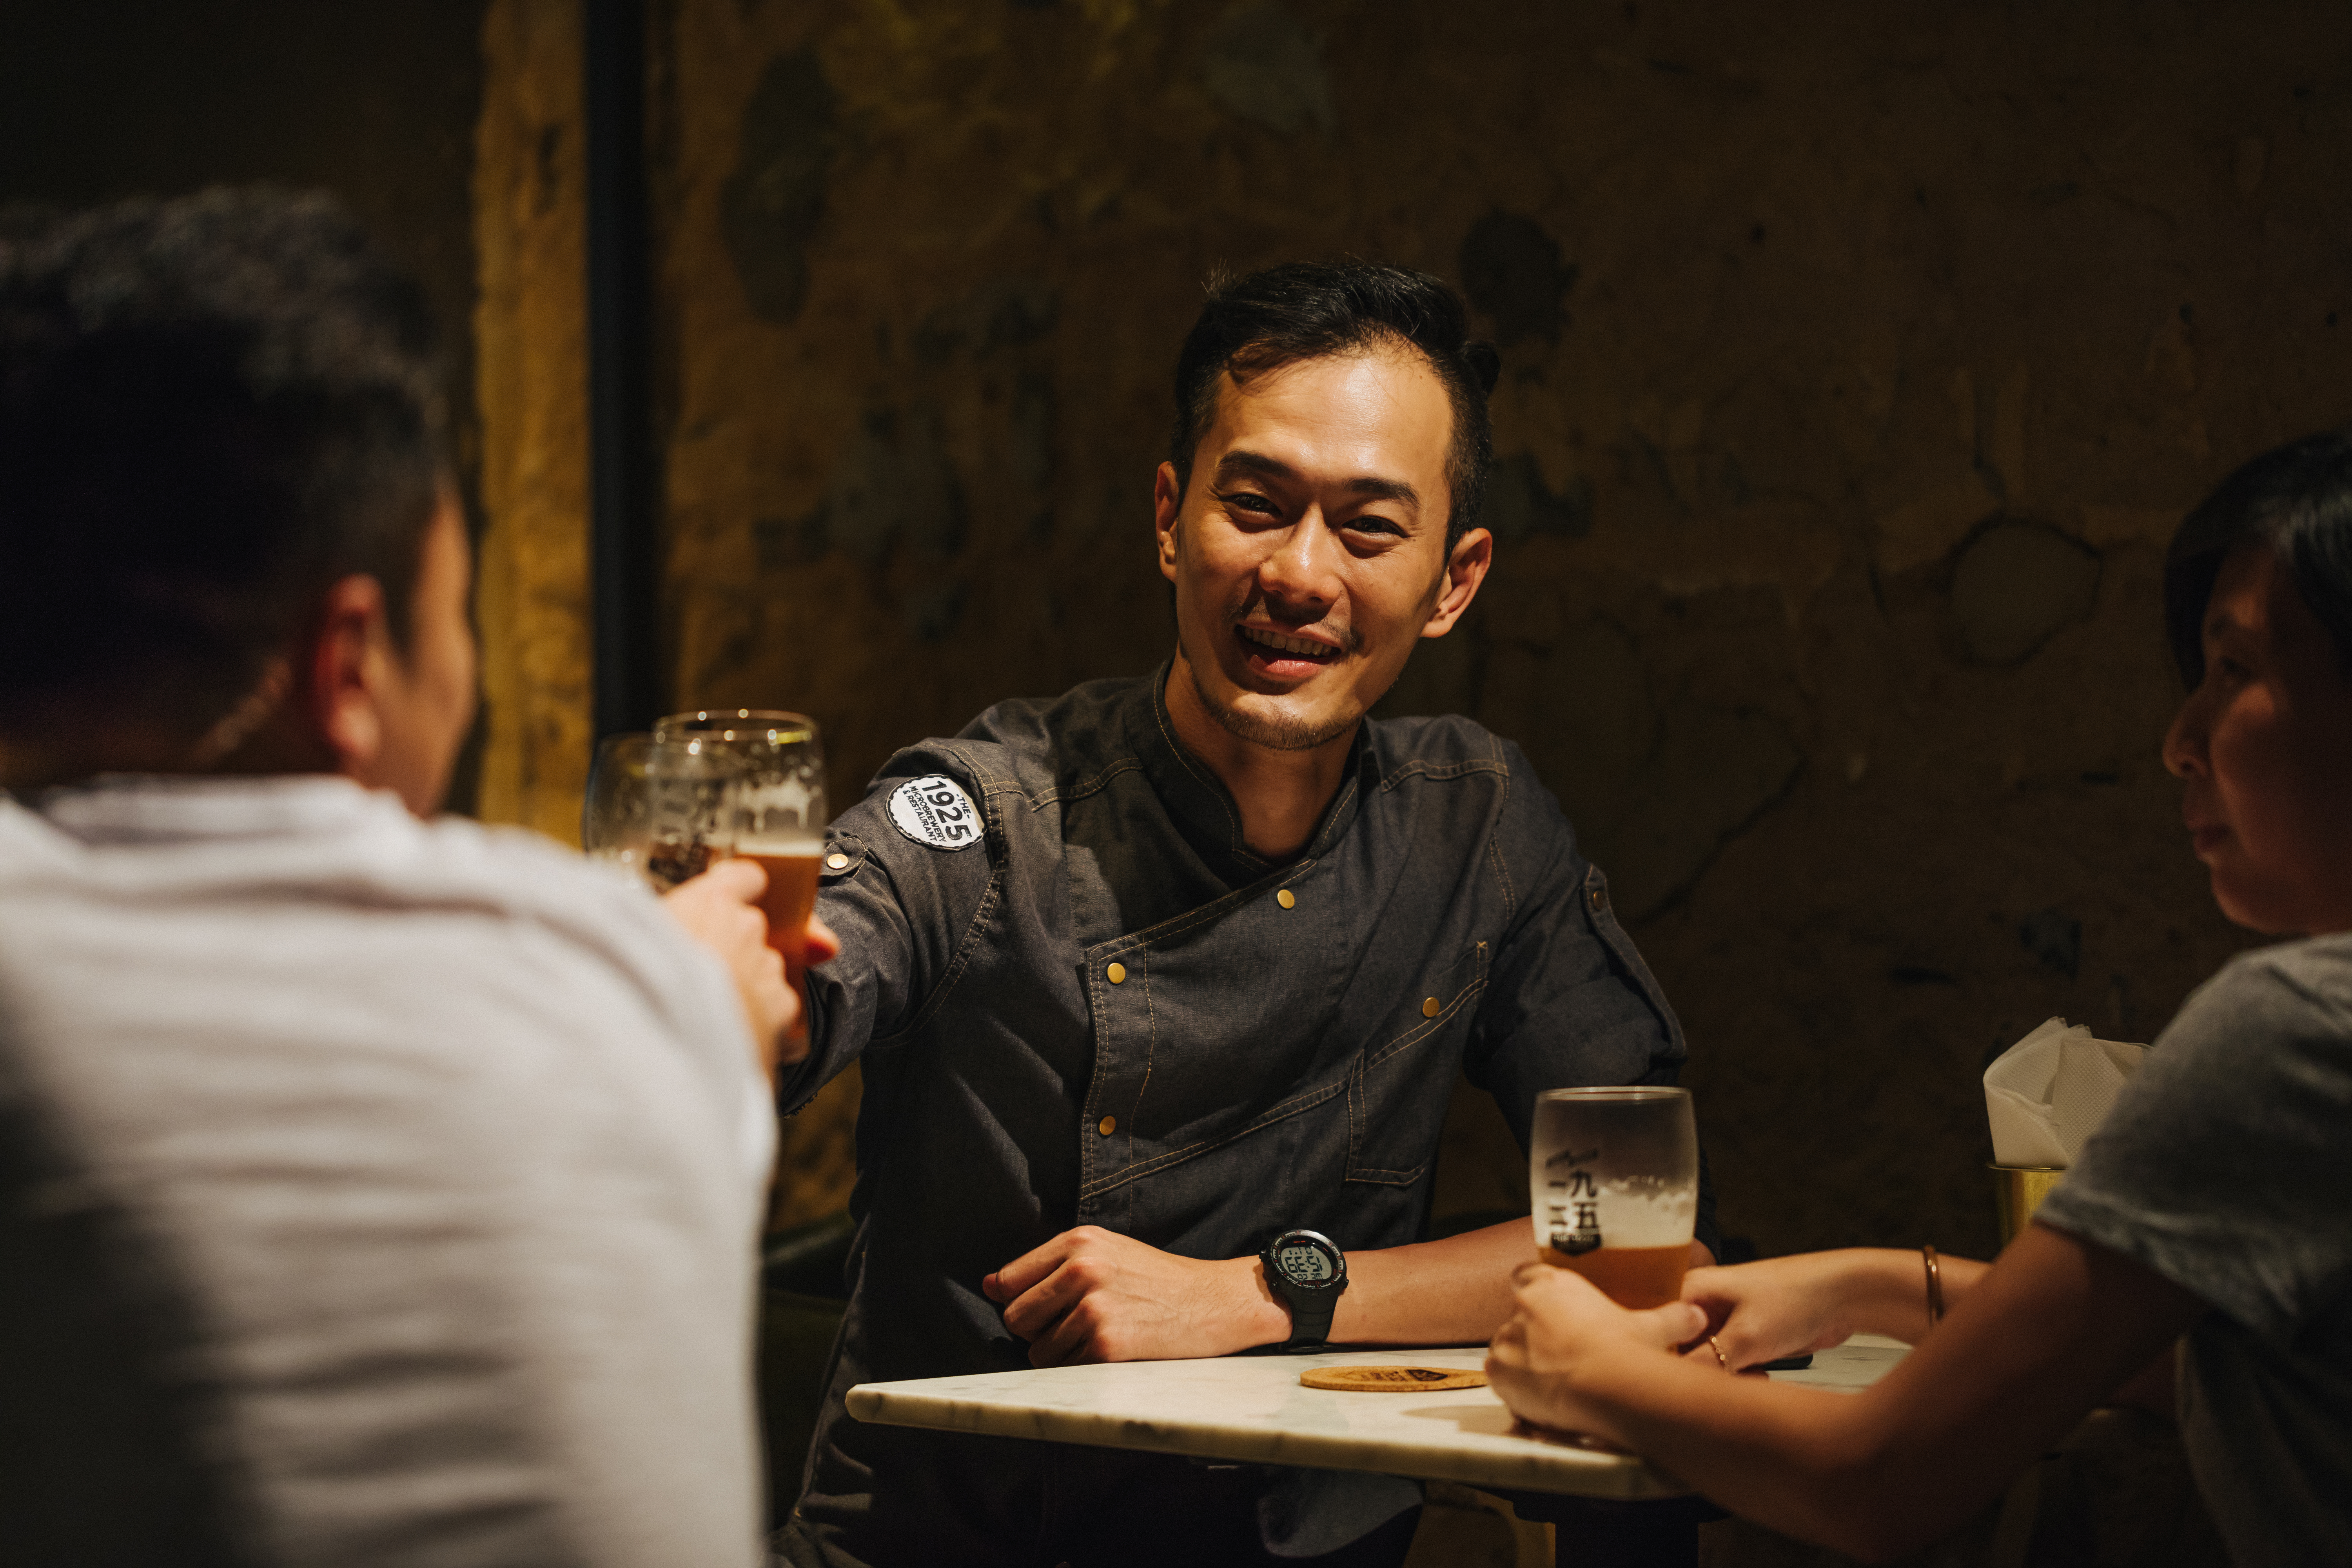 Brother x The 1925 Brewing Co: The Business of F&B